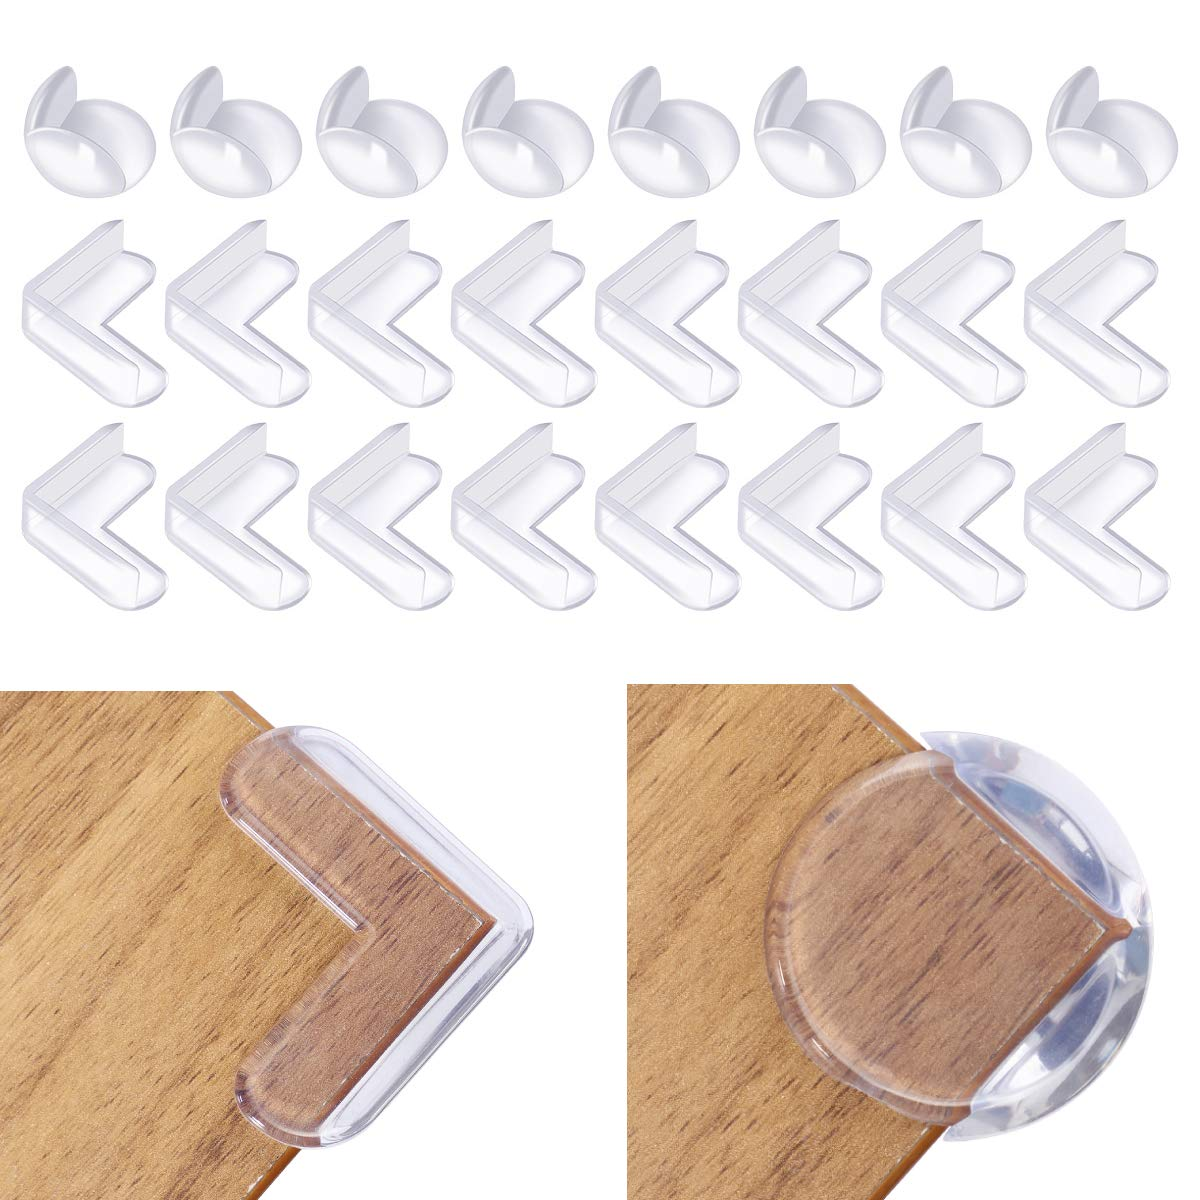 Corner Protectors, Godmorn 24Pcs Baby Proofing Corner Guards, Baby Proof Safety Products, Corner Edge Protector for Baby Safety, Clear Table Corner Guards Bumpers for Furniture, Baby Essentials